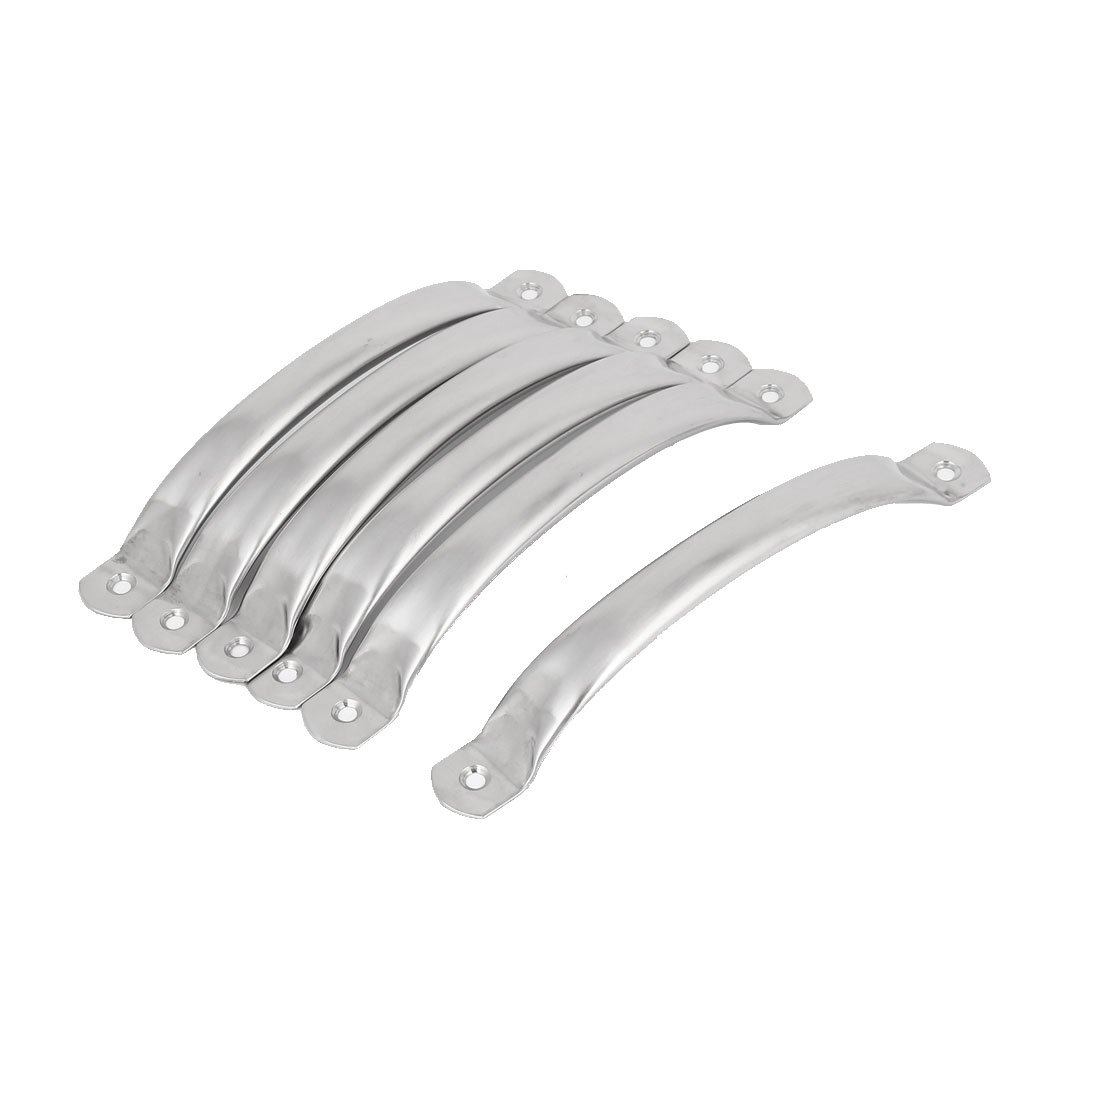 Cupboard Closet Stainless Steel Arch Style Pull Handle Silver Tone 182x21x28mm 6pcs